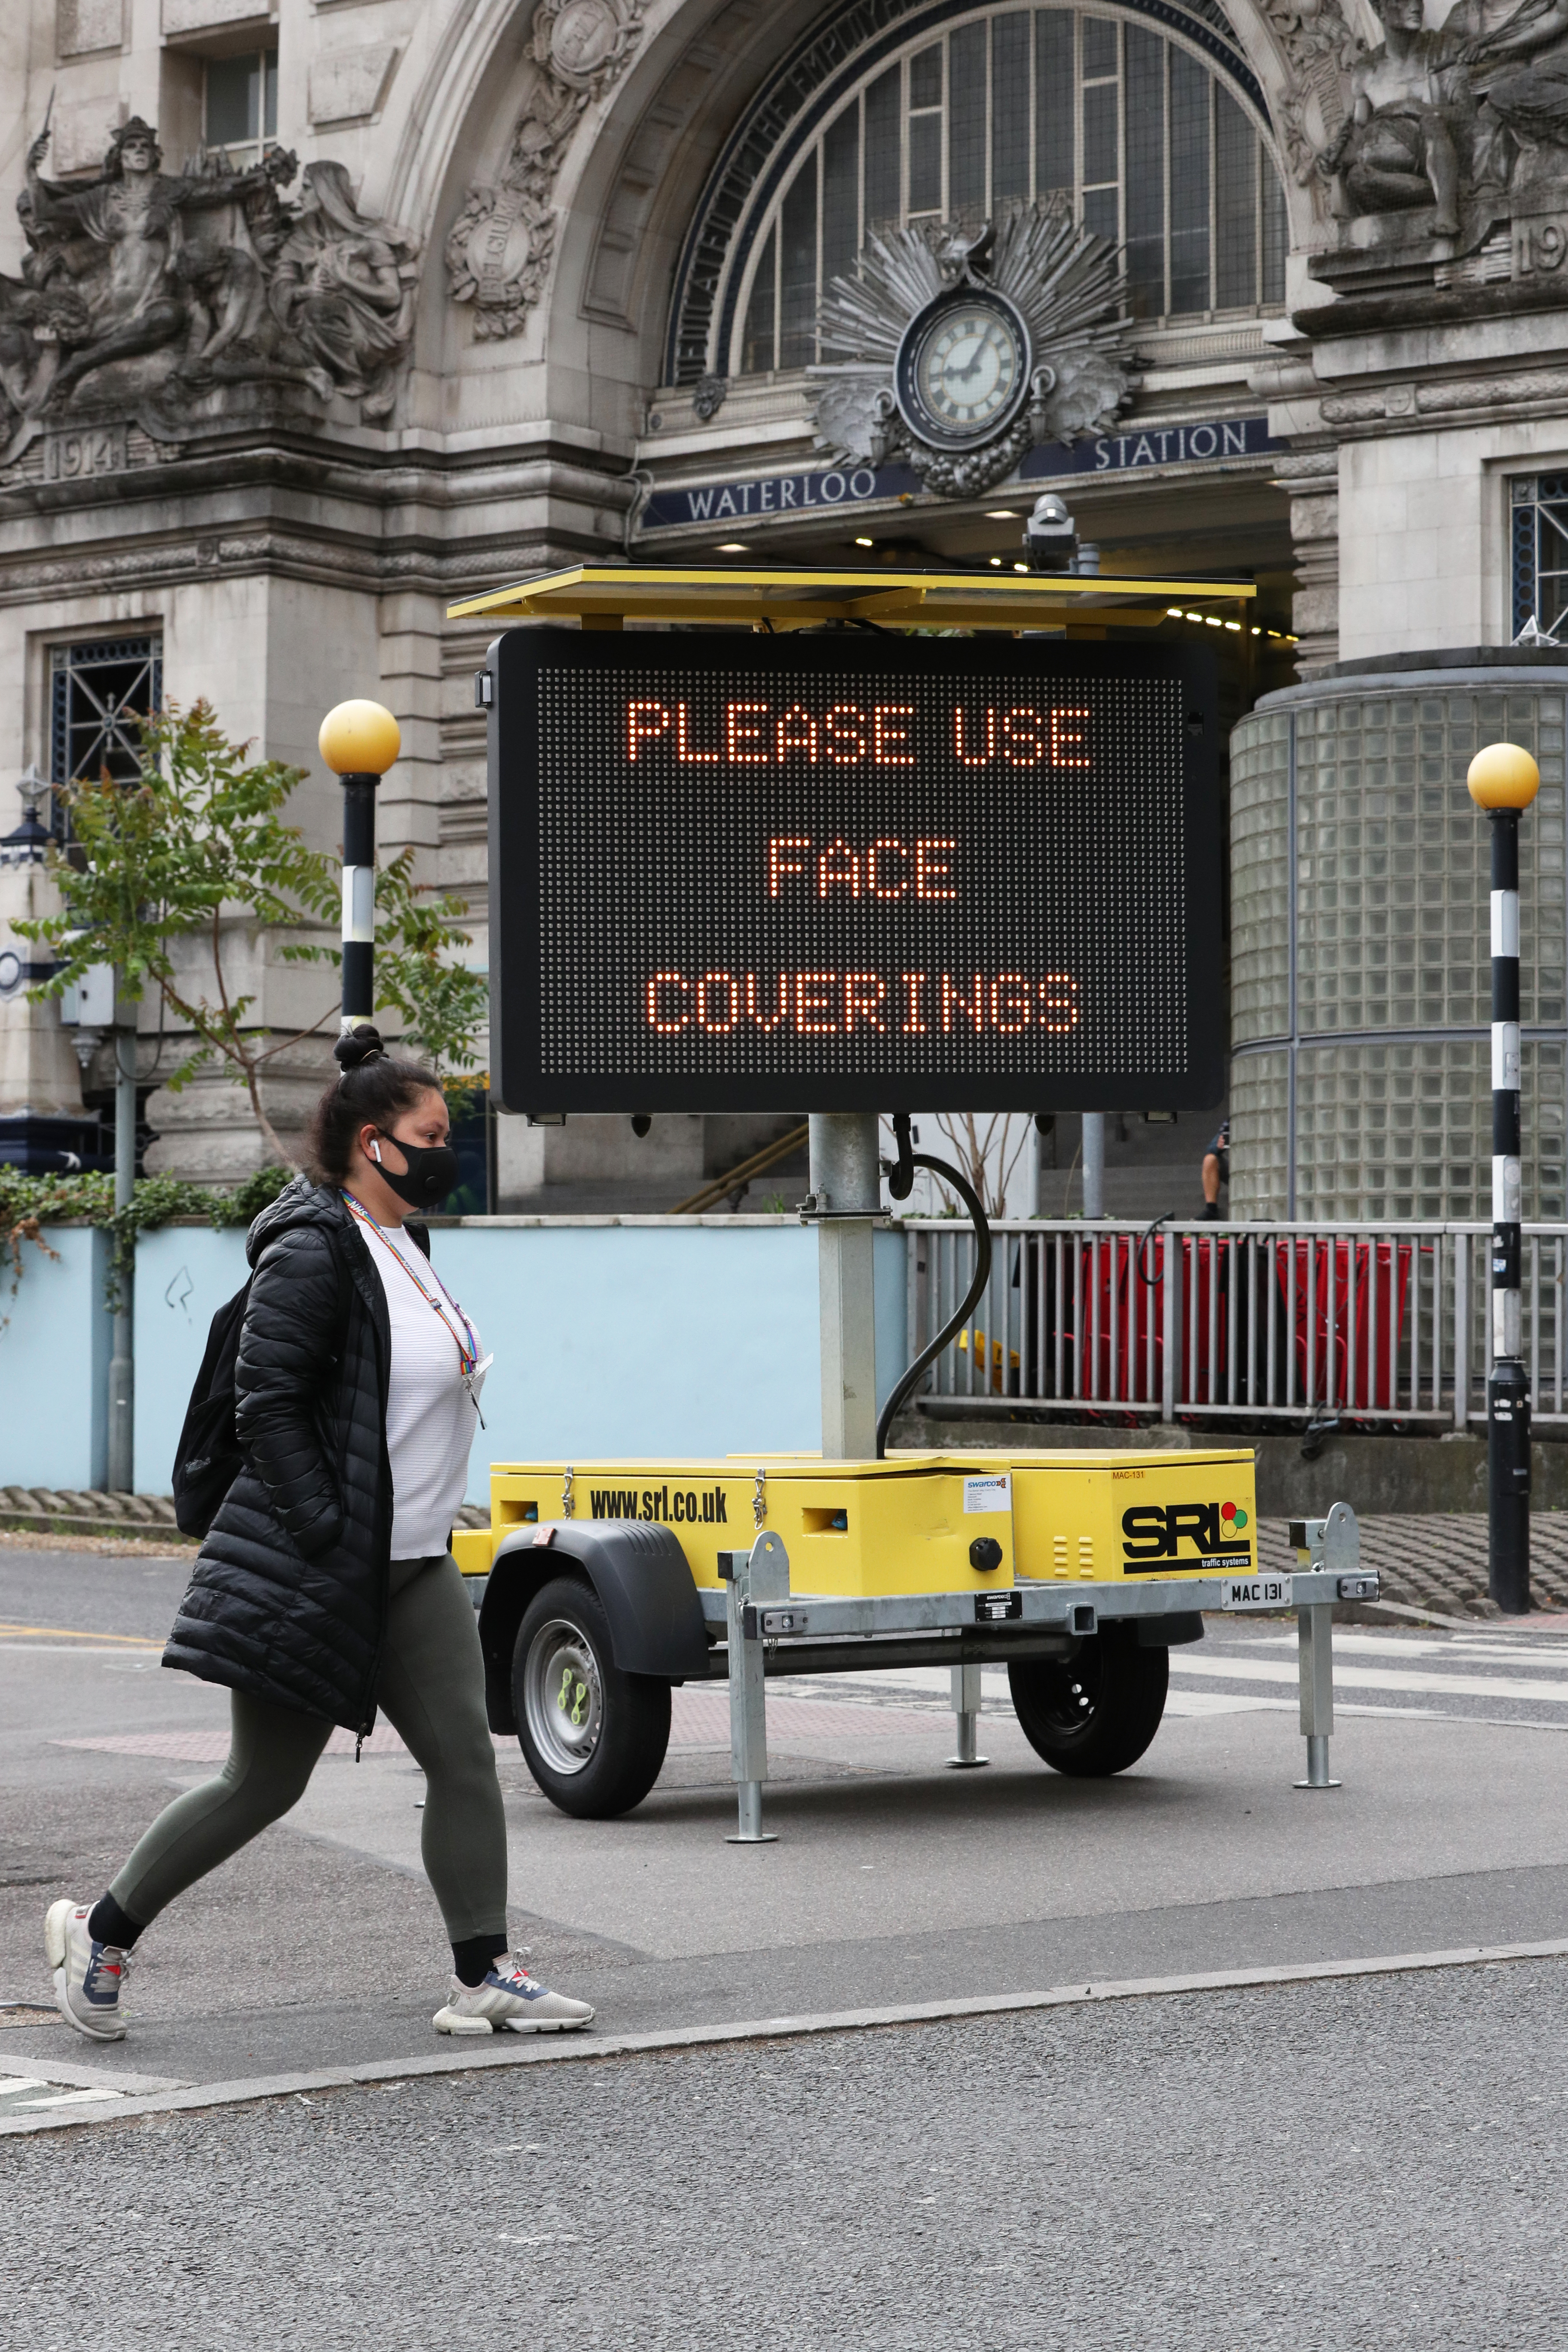 A sign asking people to use face coverings outside Waterloo station in London, following the announcement that wearing a face covering will be mandatory for passengers on public transport in England from June 15. (Photo by Jonathan Brady/PA Images via Getty Images)